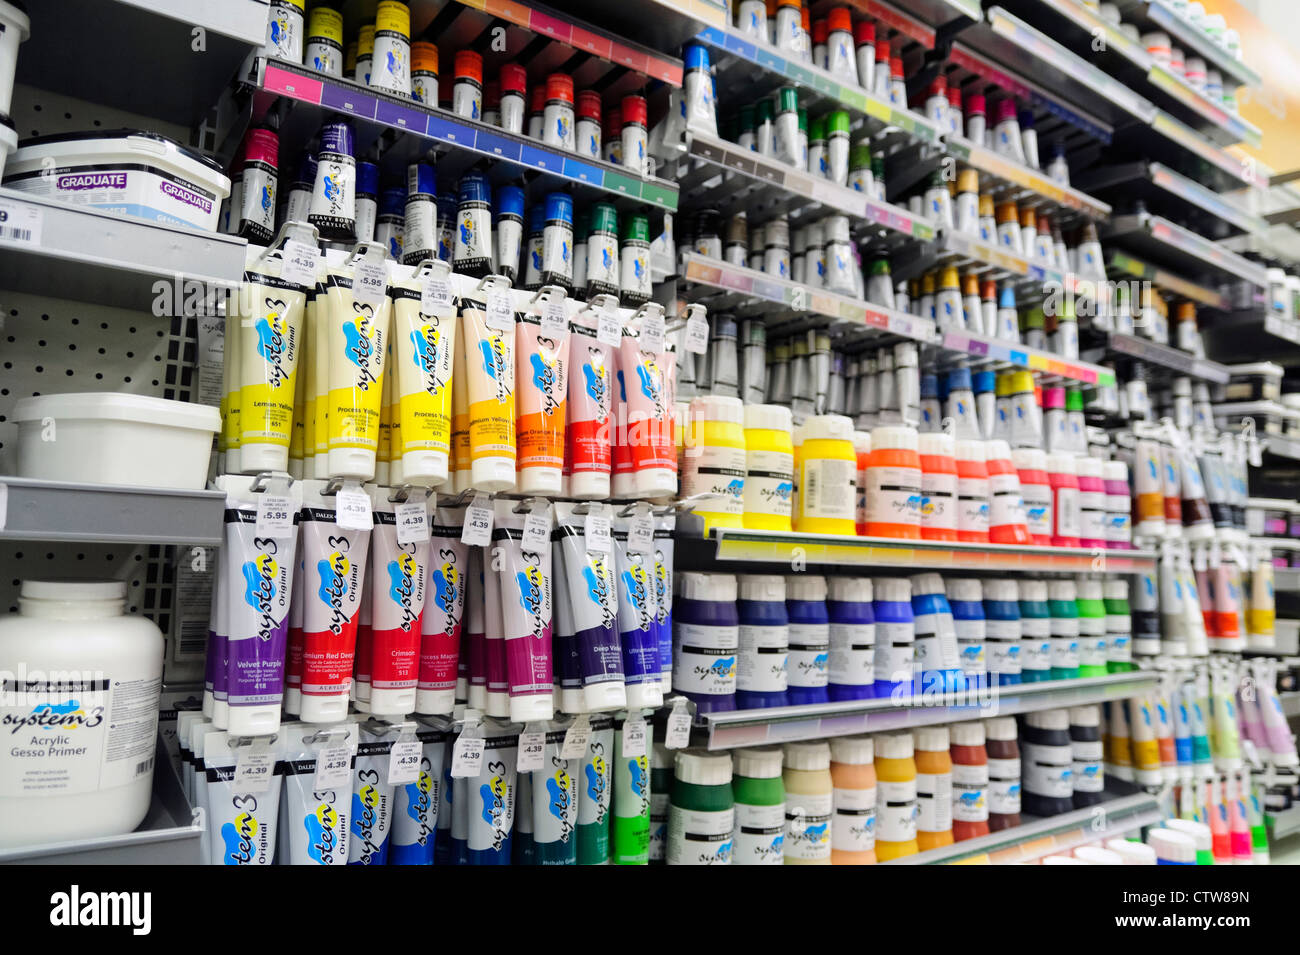 Art Store Art Supplies Tubes Of Acrylic Paint For Sale Inside A Hobby Craft